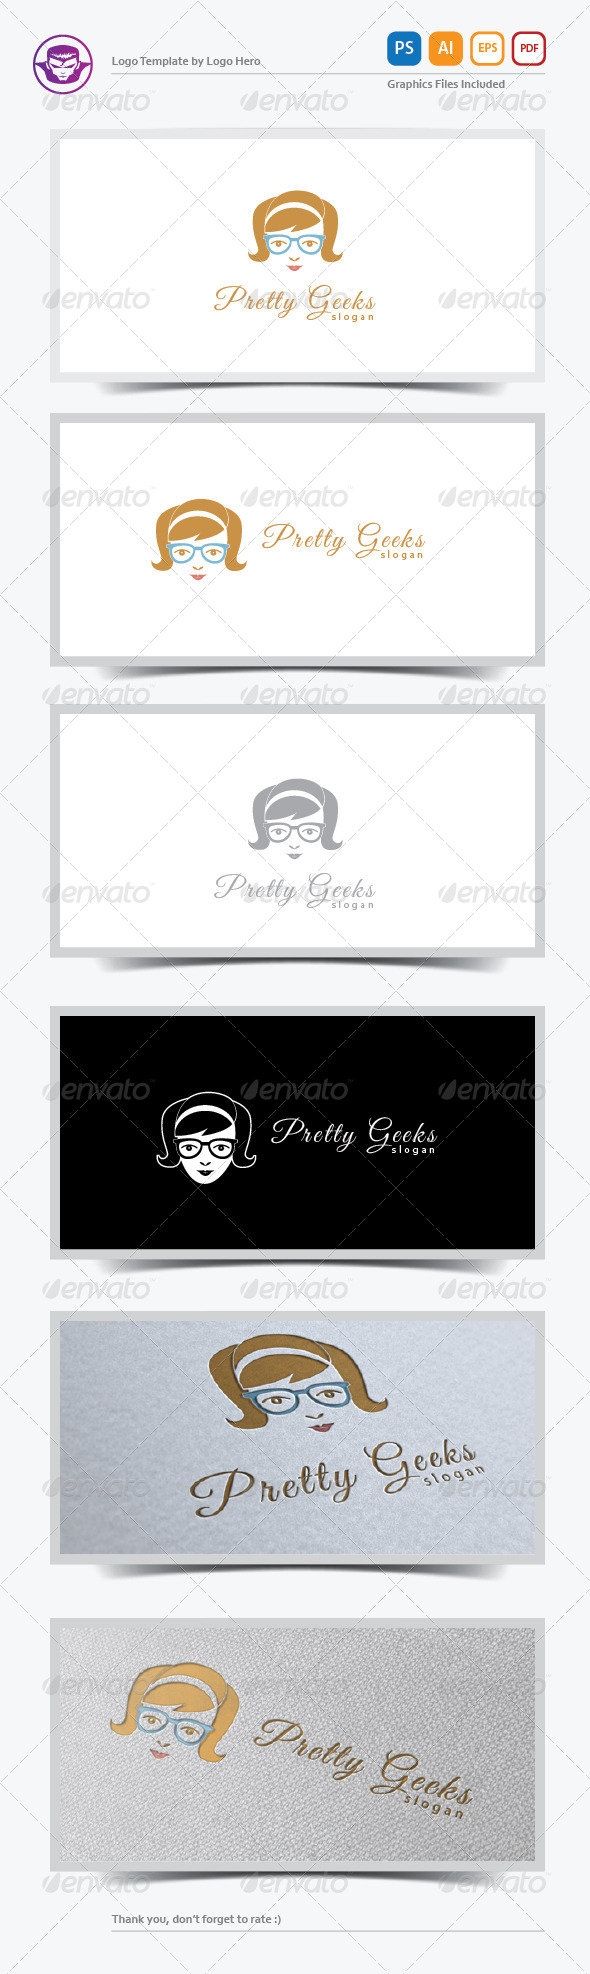 GraphicRiver Pretty Geeks Logo Template 5883953